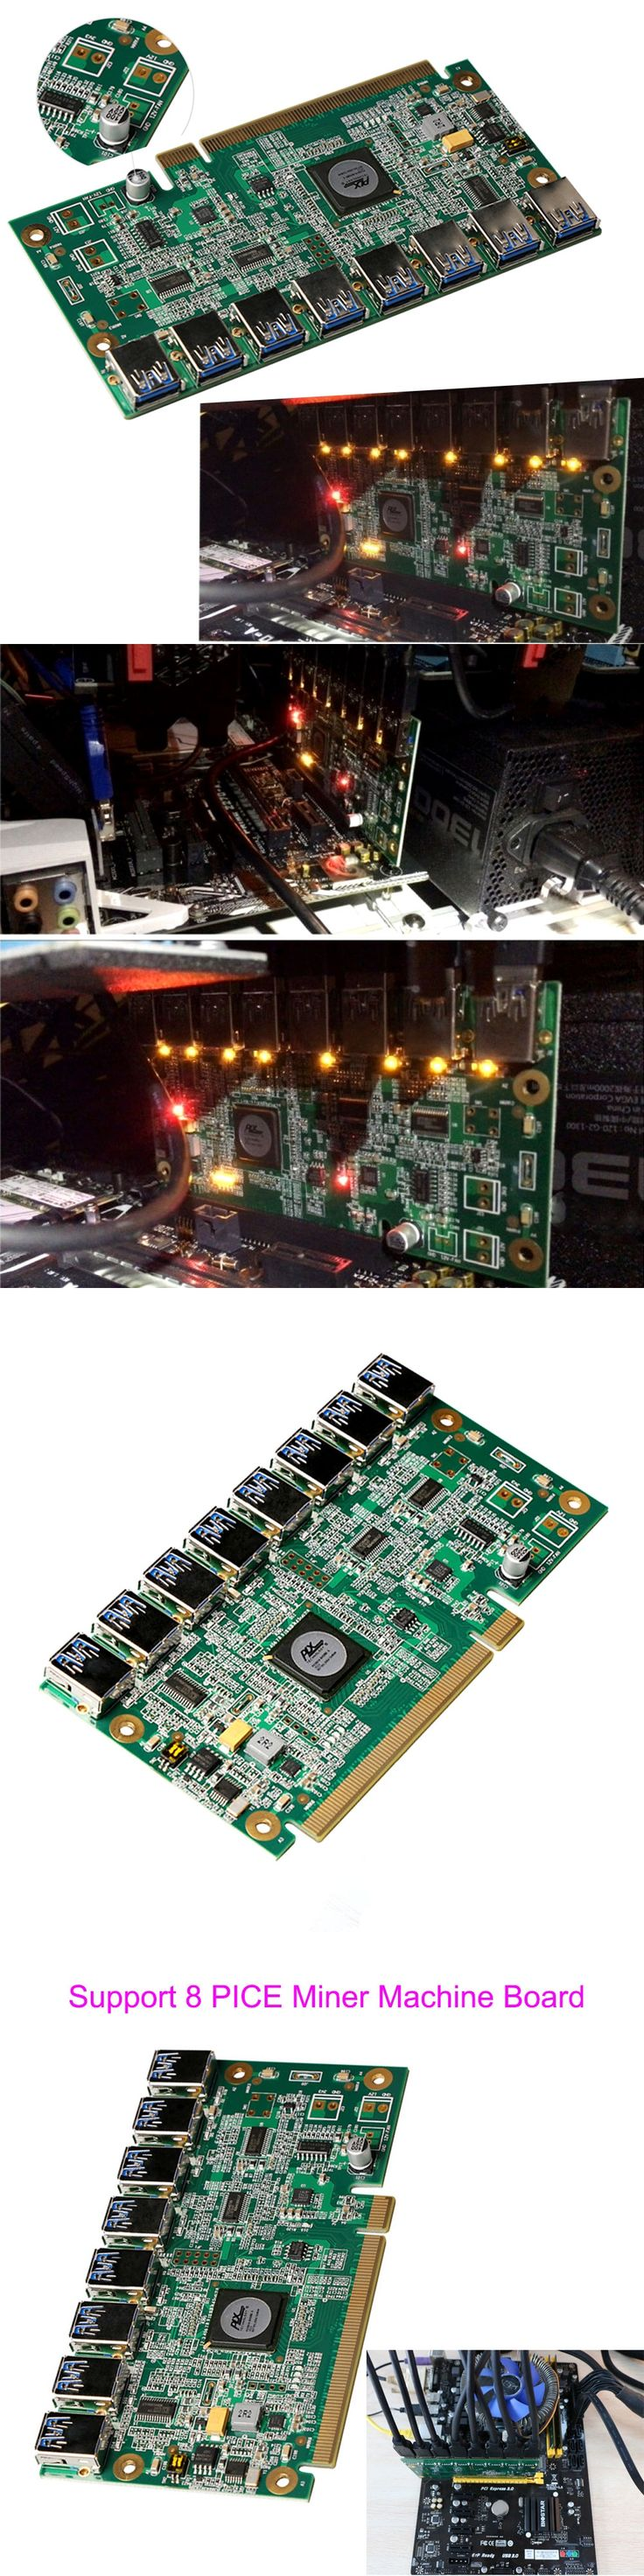 Motherboard PCI Express 1 to 8 Mining Riser Card PCI-E x16 Data Graphics SATA to 8Pin Adapter Card for BTC Miner Machine Board